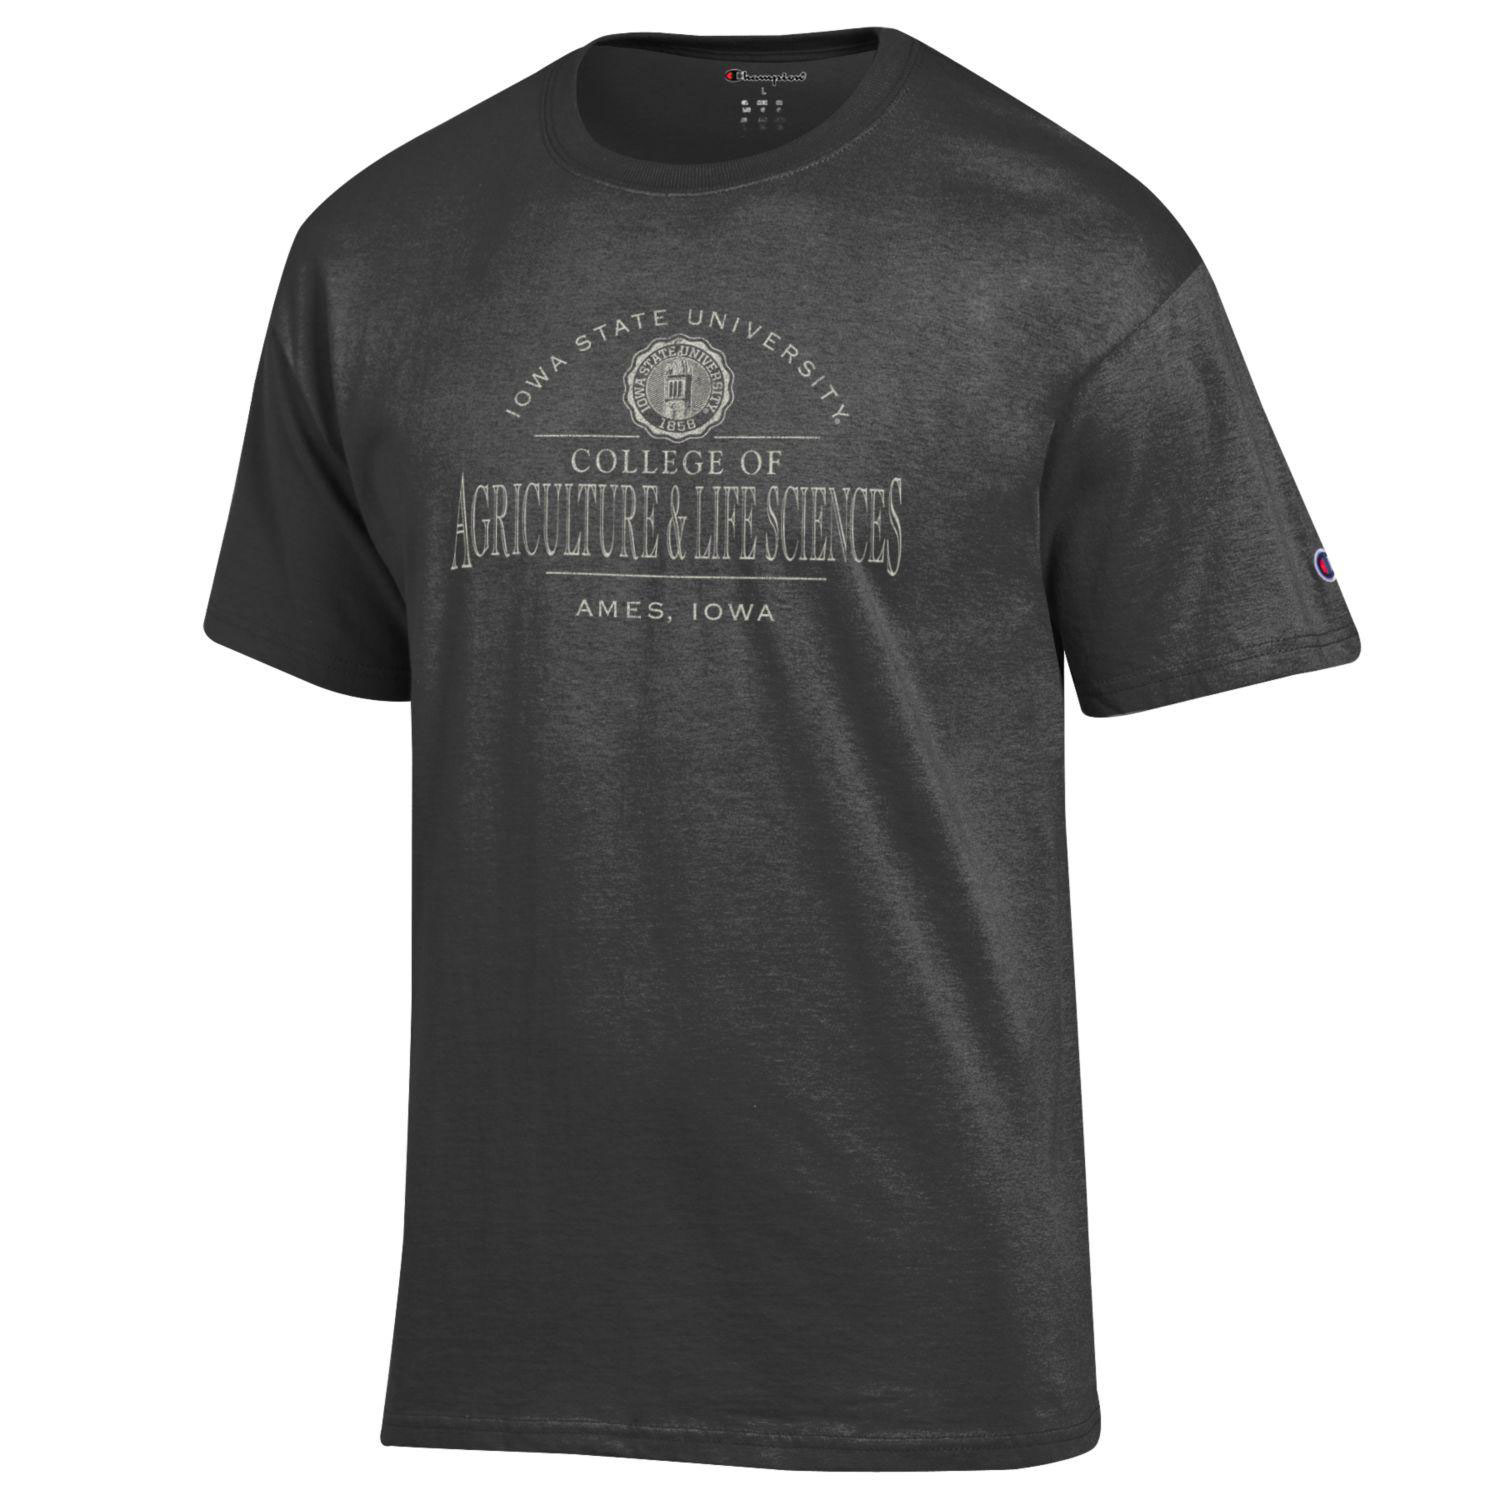 Image For College of Agriculture & Life Science T-Shirt* WAS $19.99